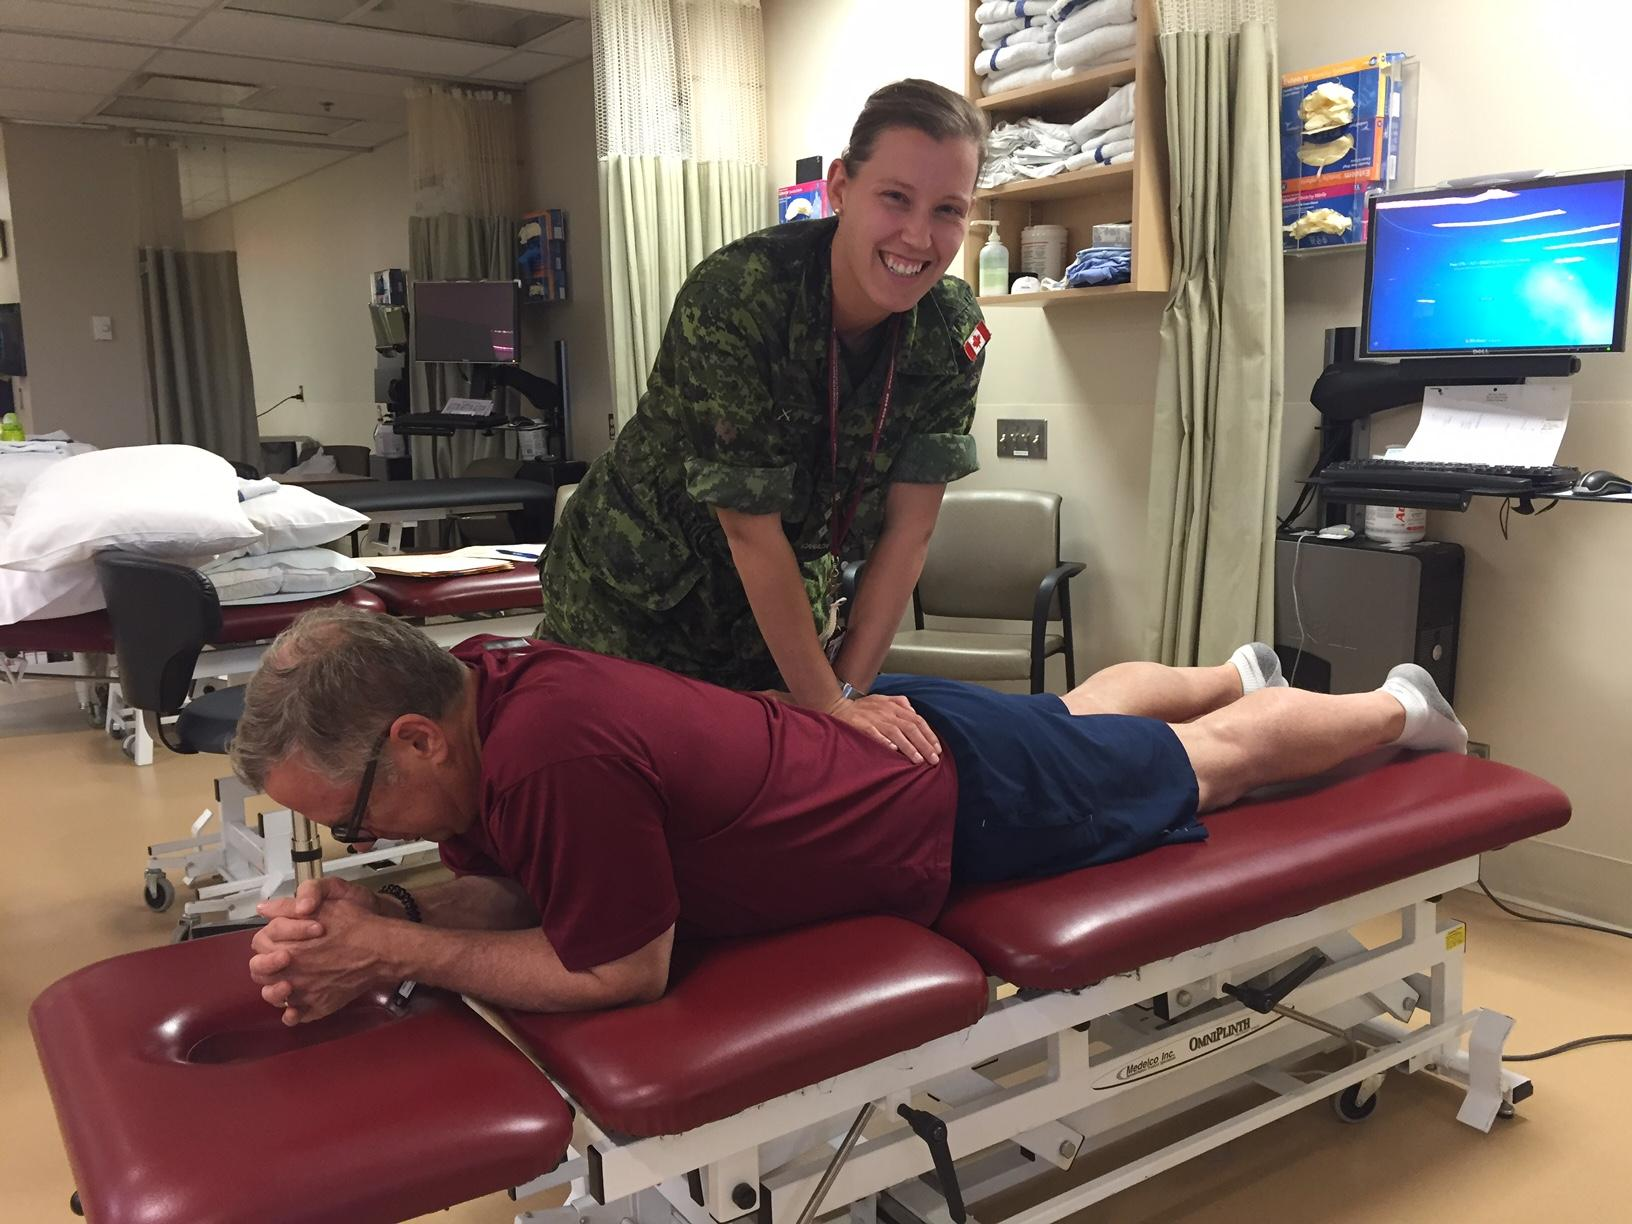 Captain Carole-Anne Dufour at work in the Canadian Forces Health Services Centre, Ottawa. Capt Dufour says her work as a Physiotherapy Officer is never dull. Photo provided by: Captain Carole-Anne Dufour